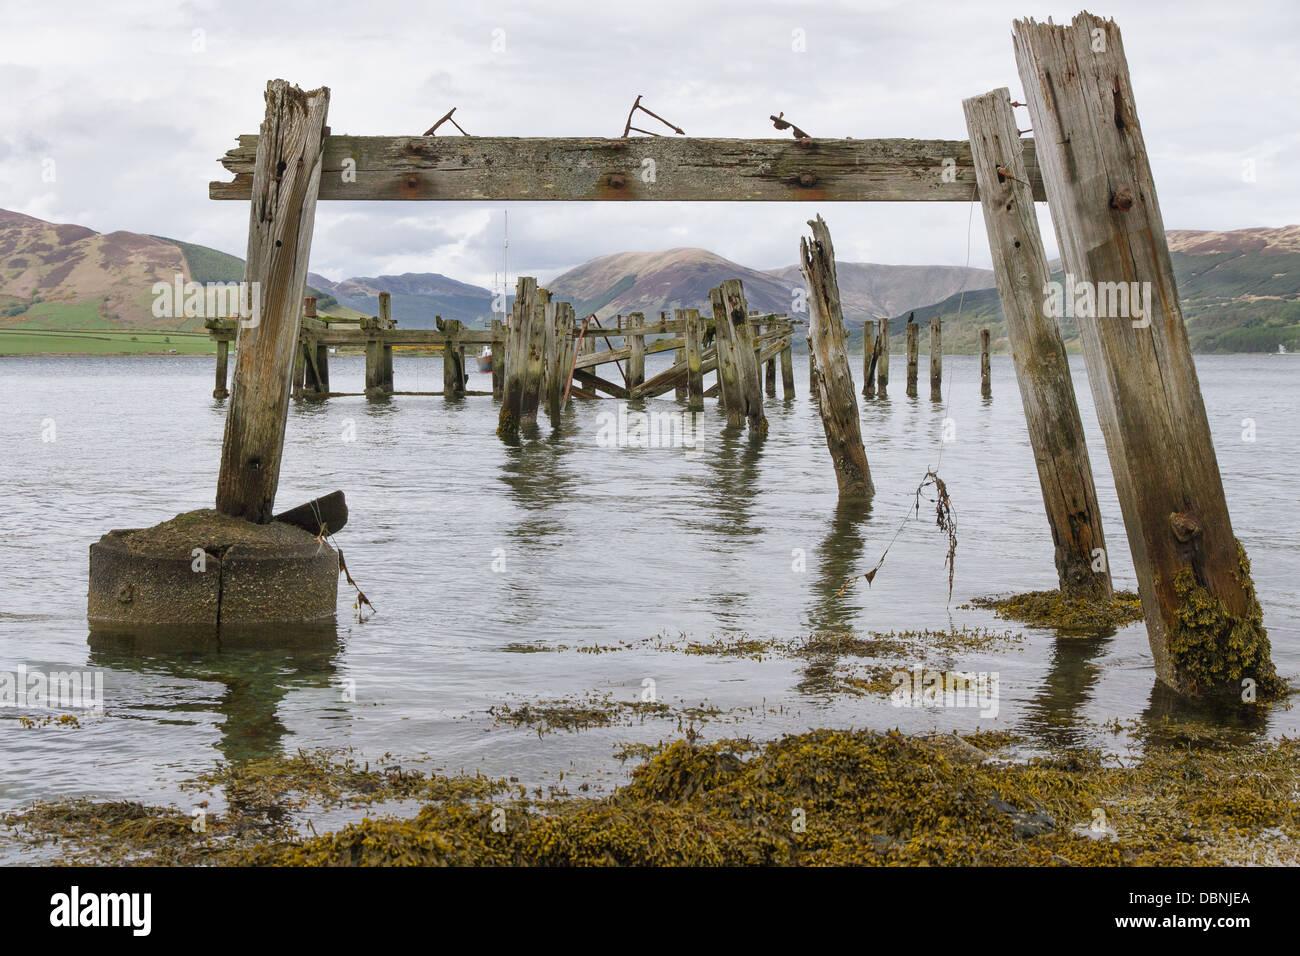 Looking through the the decrepit pier at Port Bannatyne, Isle of Bute out to highland mountains - Stock Image